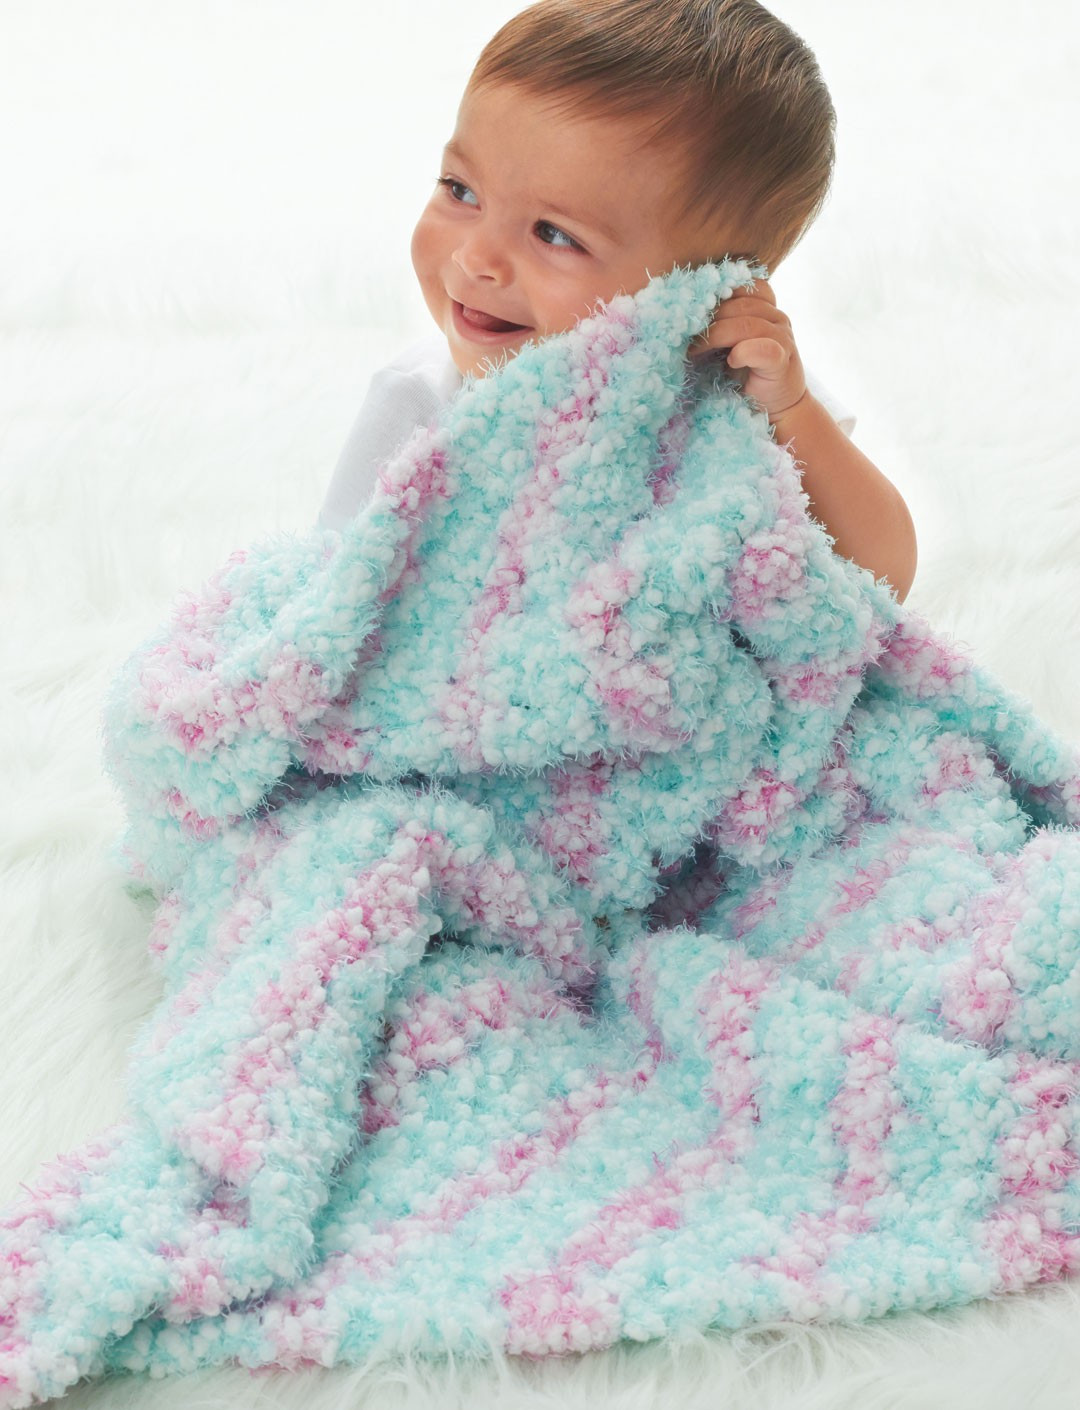 Crochet toddler Blanket Best Of Bernat Corner to Corner Blanket Crochet Pattern Of Amazing 41 Ideas Crochet toddler Blanket